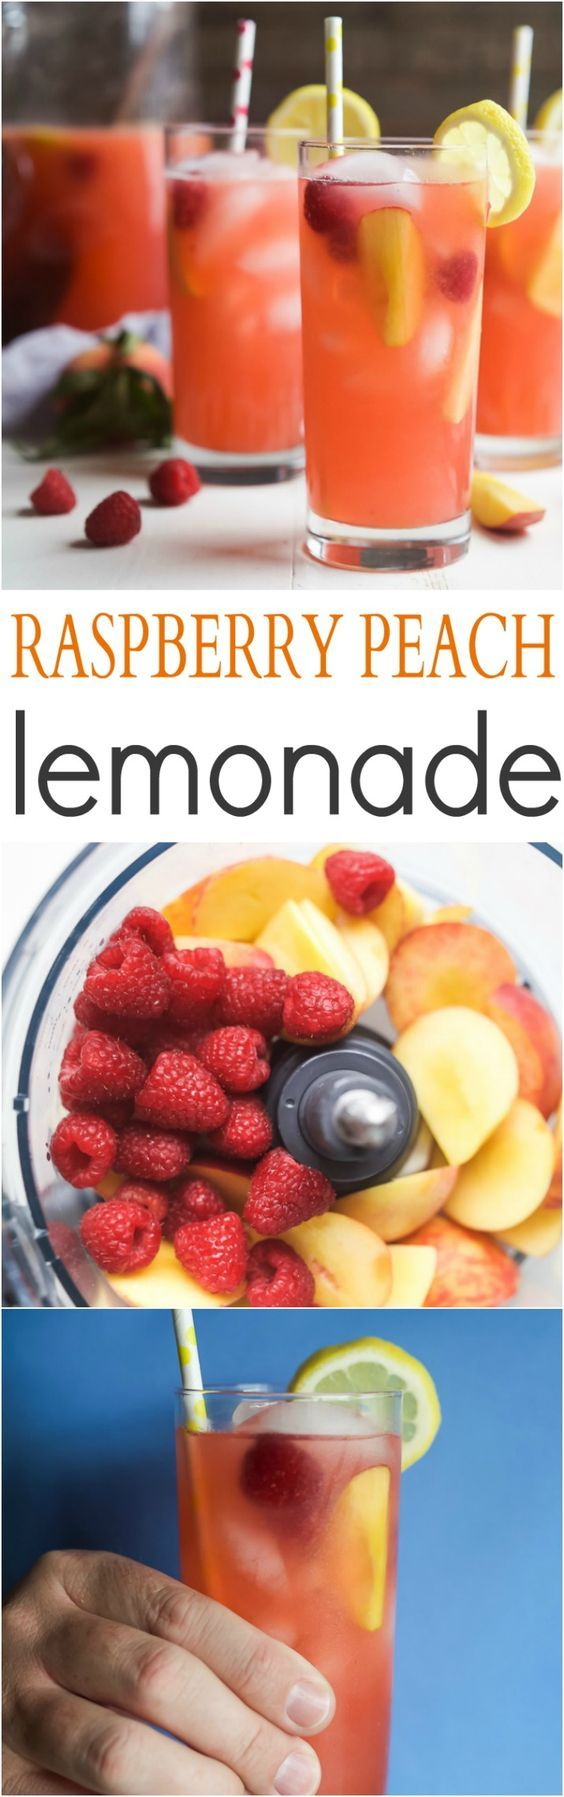 A Homemade Raspberry Peach Lemonade Recipe made with fresh raspberries and peaches for the ultimate refreshing drink to cool you down this summer!